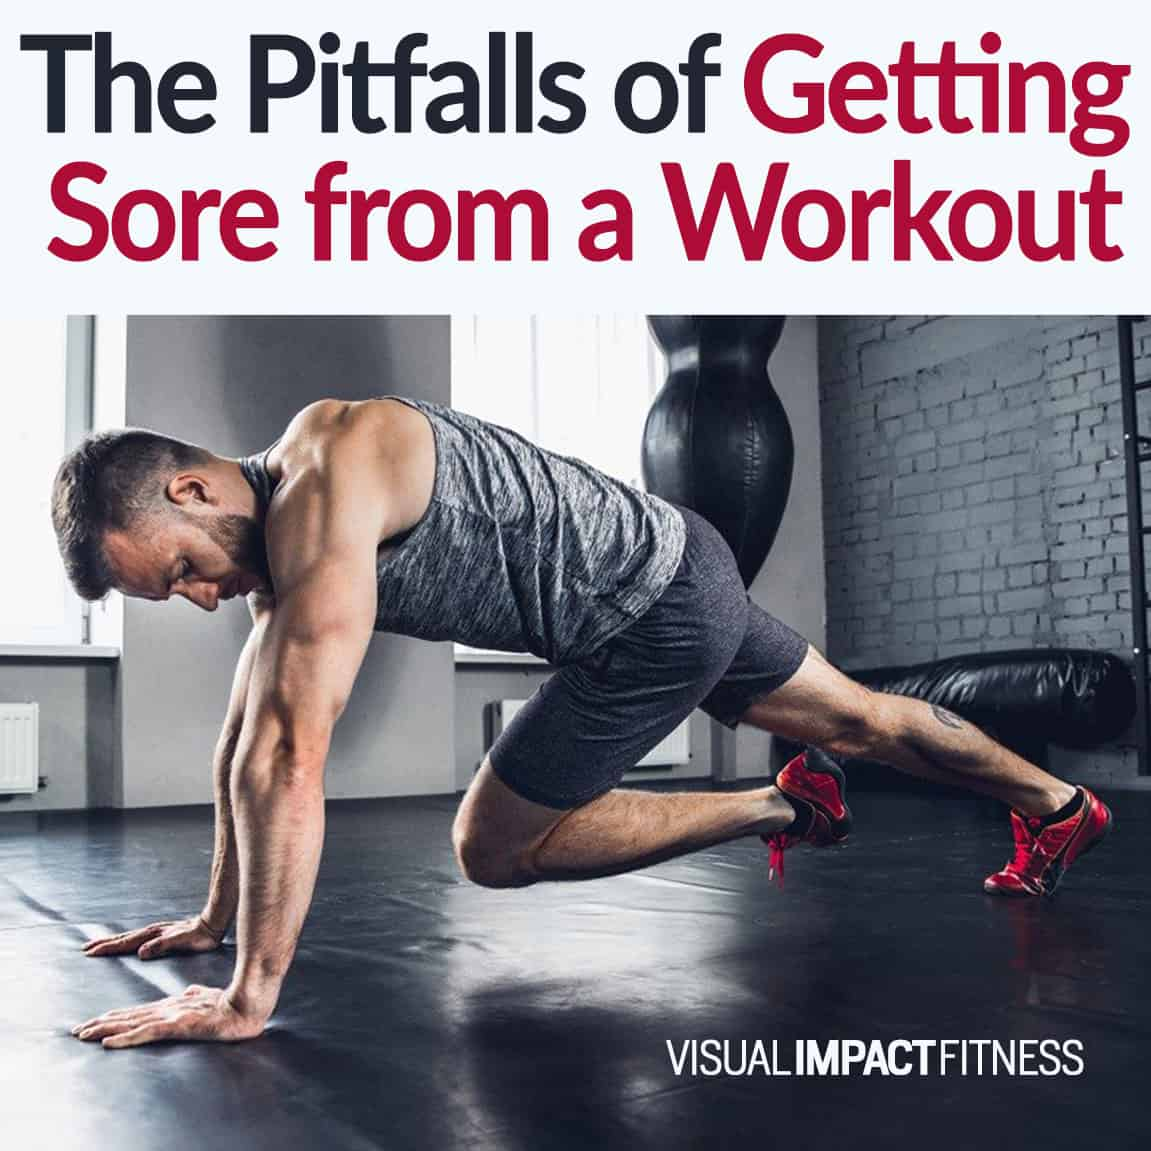 The Pitfalls of Getting Sore from a Workout